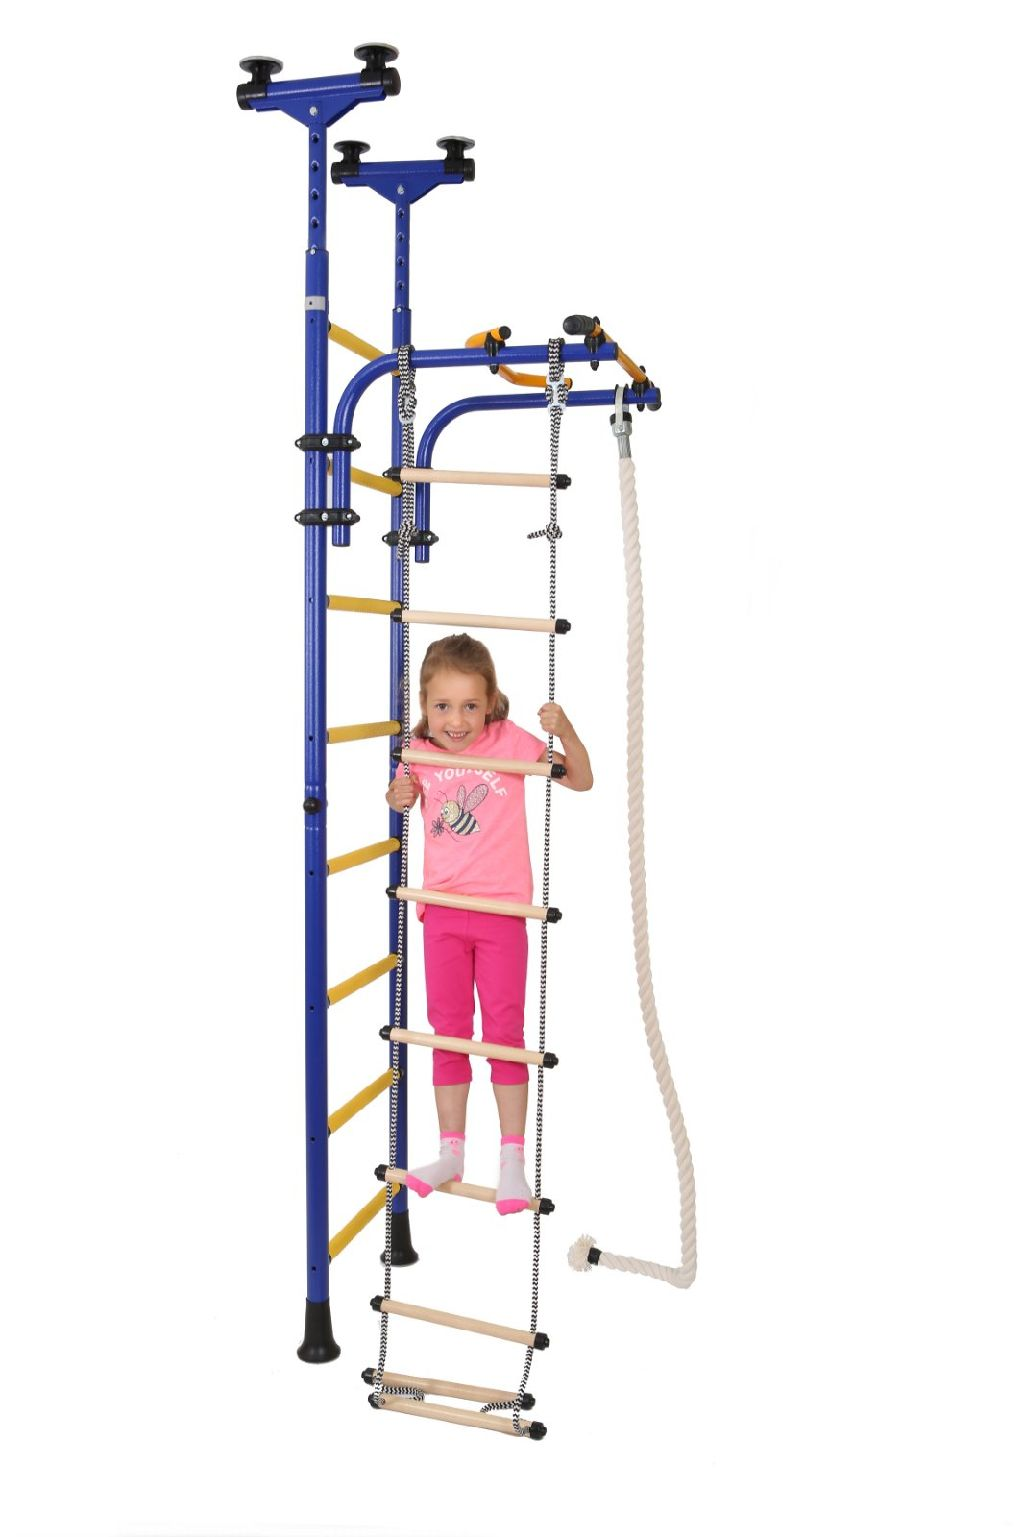 Limikids indoor home gym for kids model olympian claz